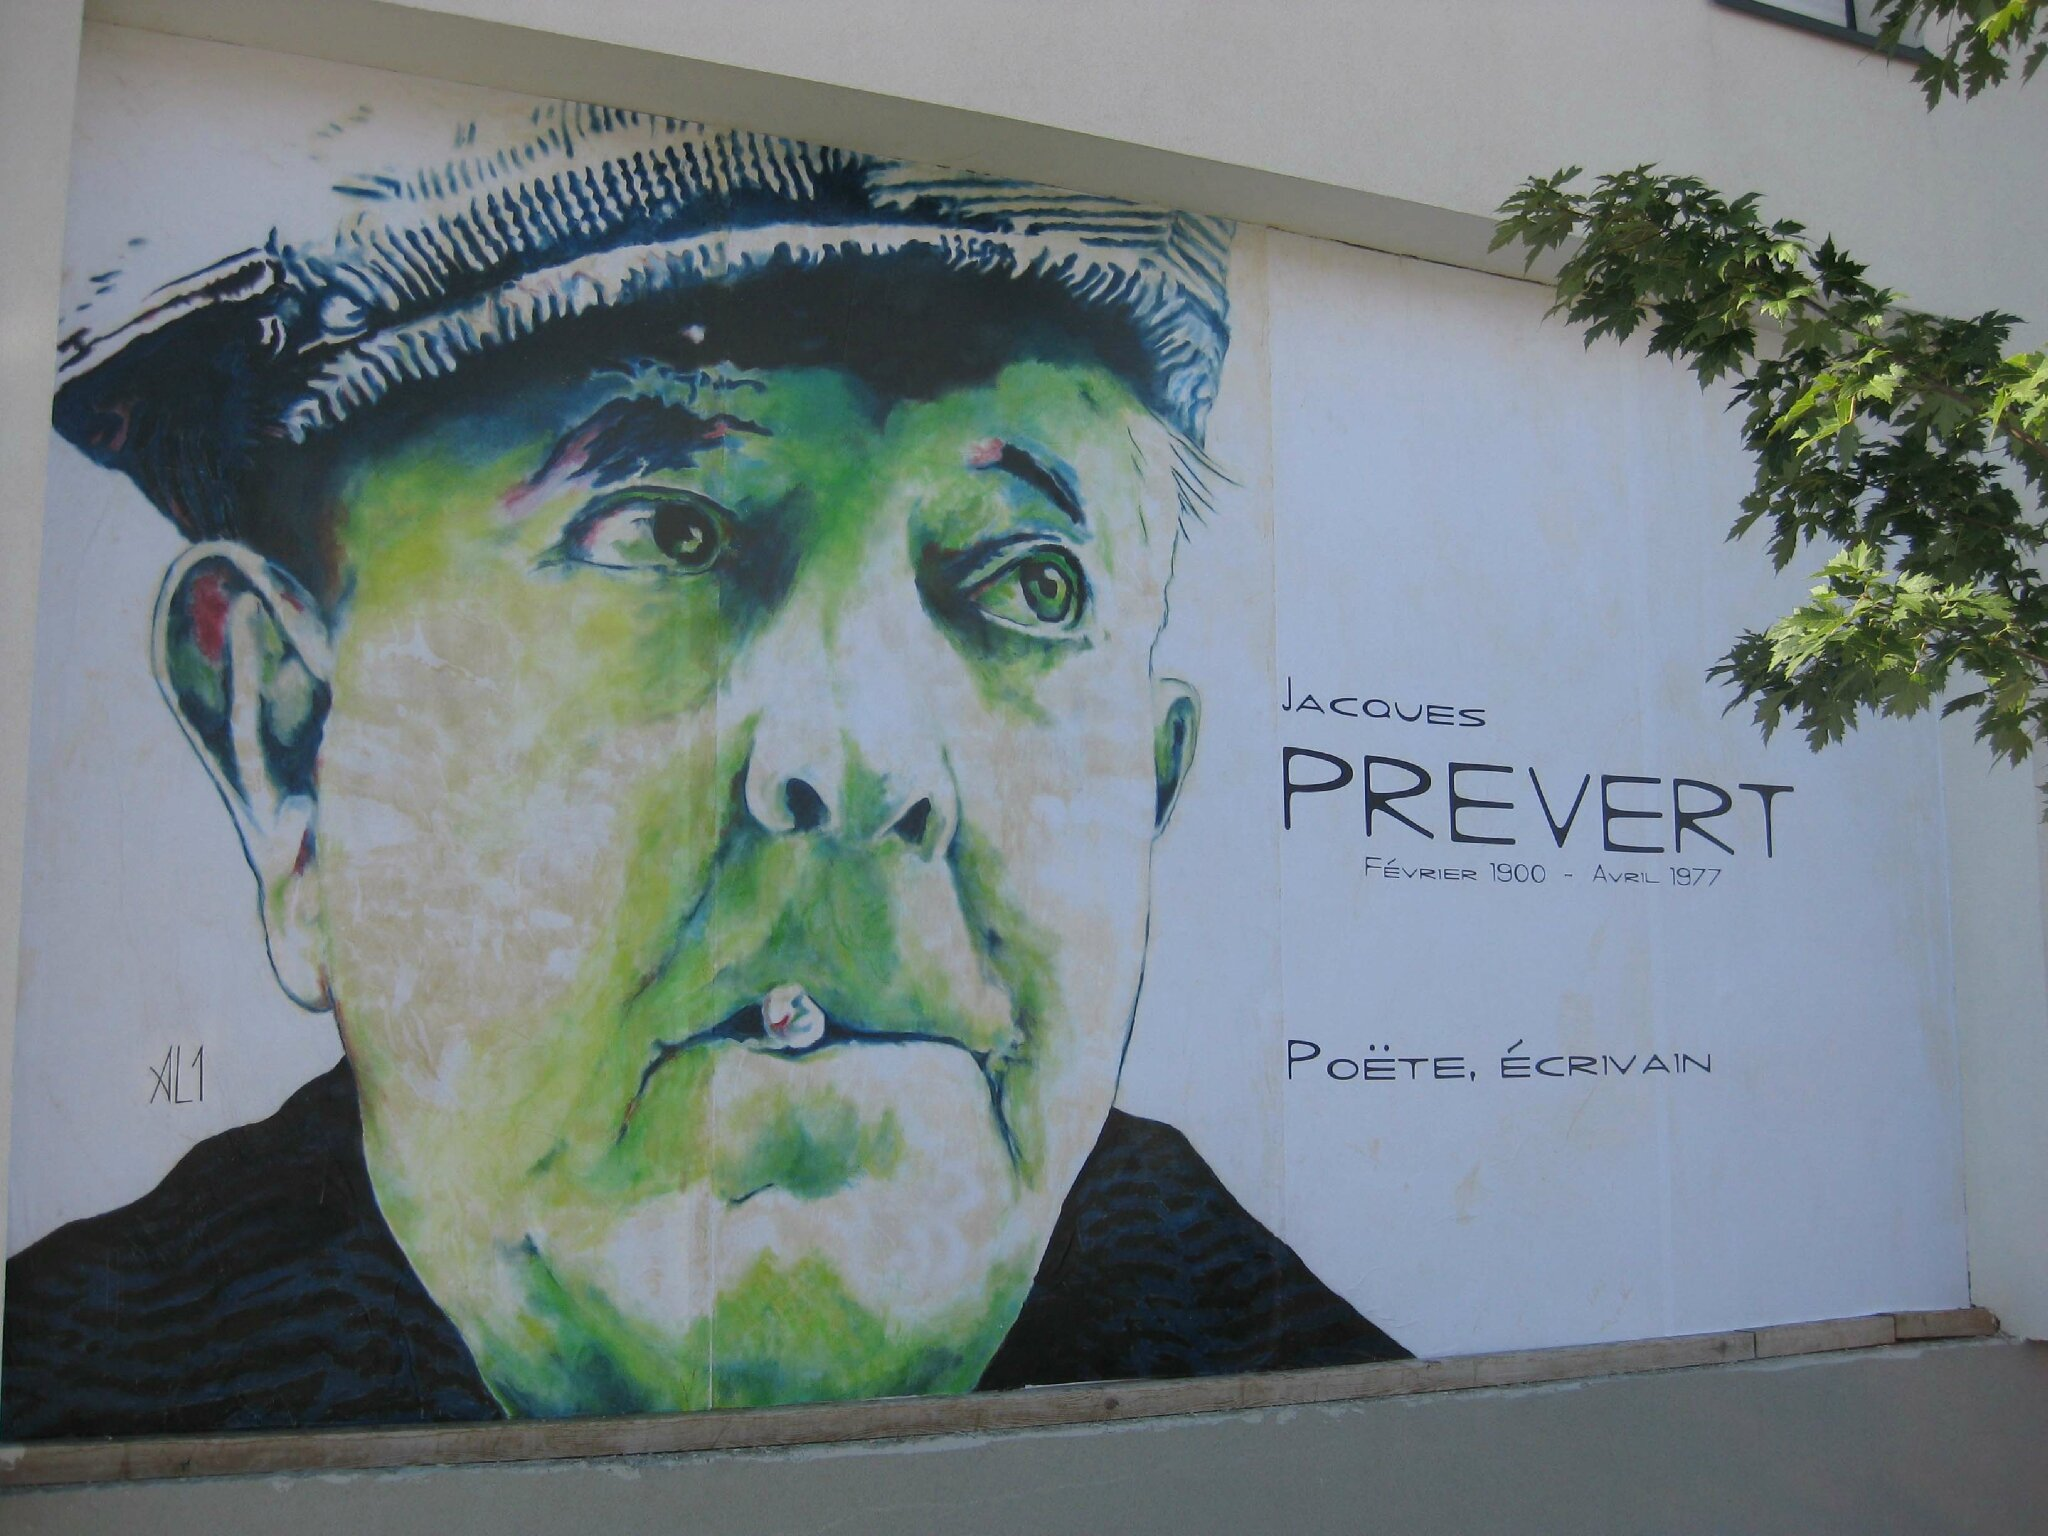 Jacques Prevert Light